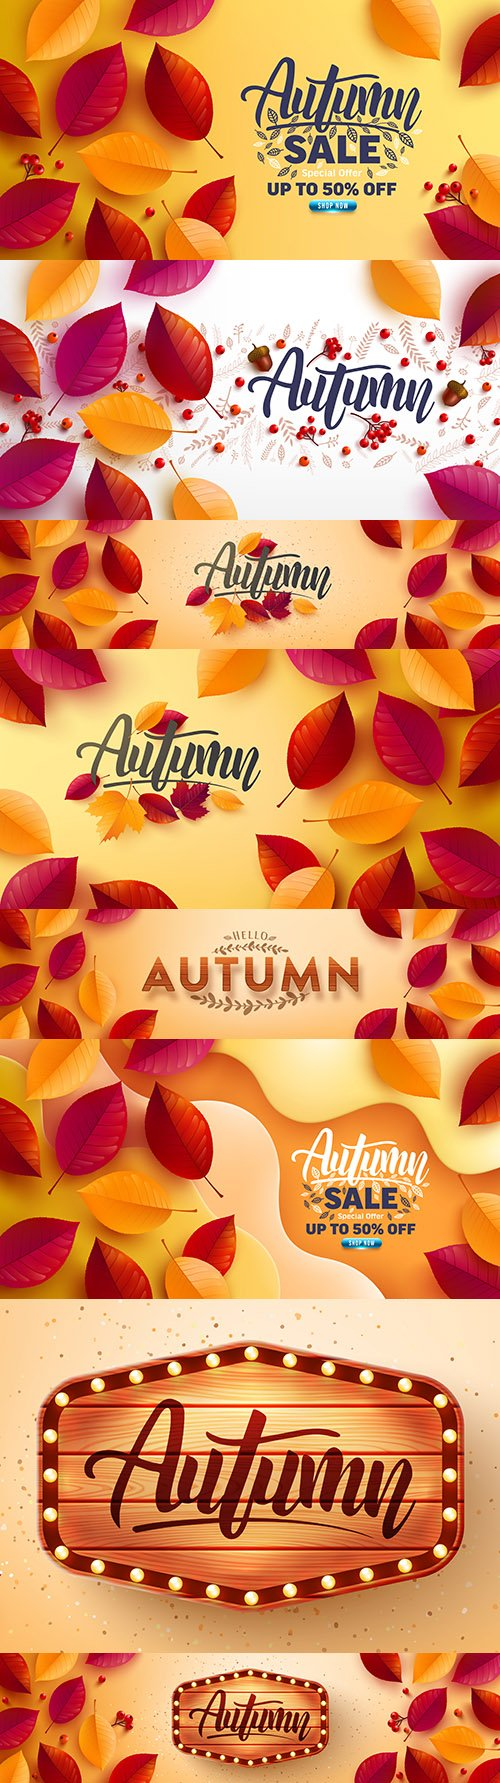 Autumn poster and banner with autumn multi-colored leaves